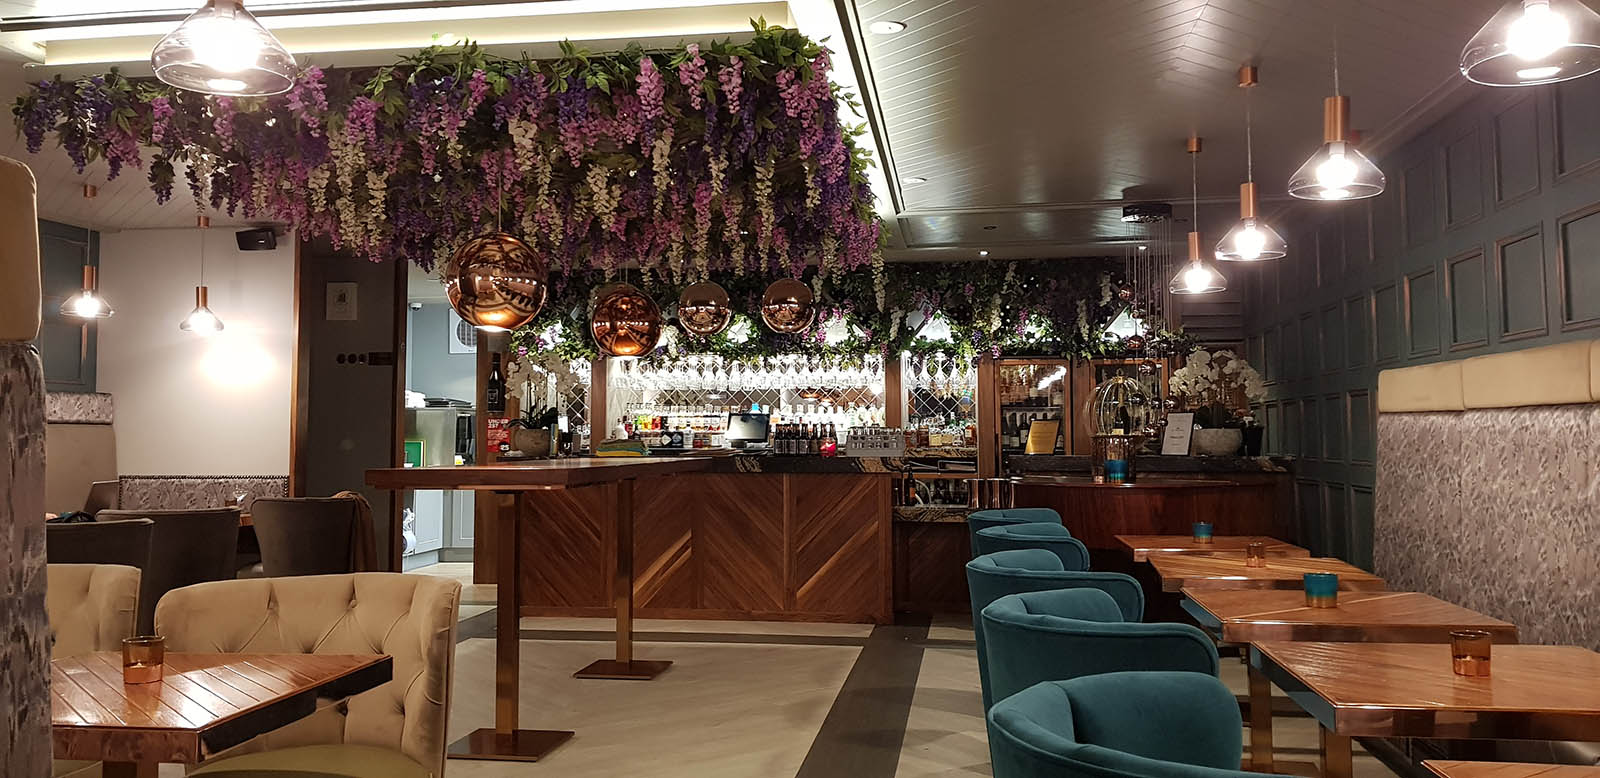 Grape and Grain Aberdeen's floral ceiling with trailing pink and purple wisteria hanging above the bar and seating area